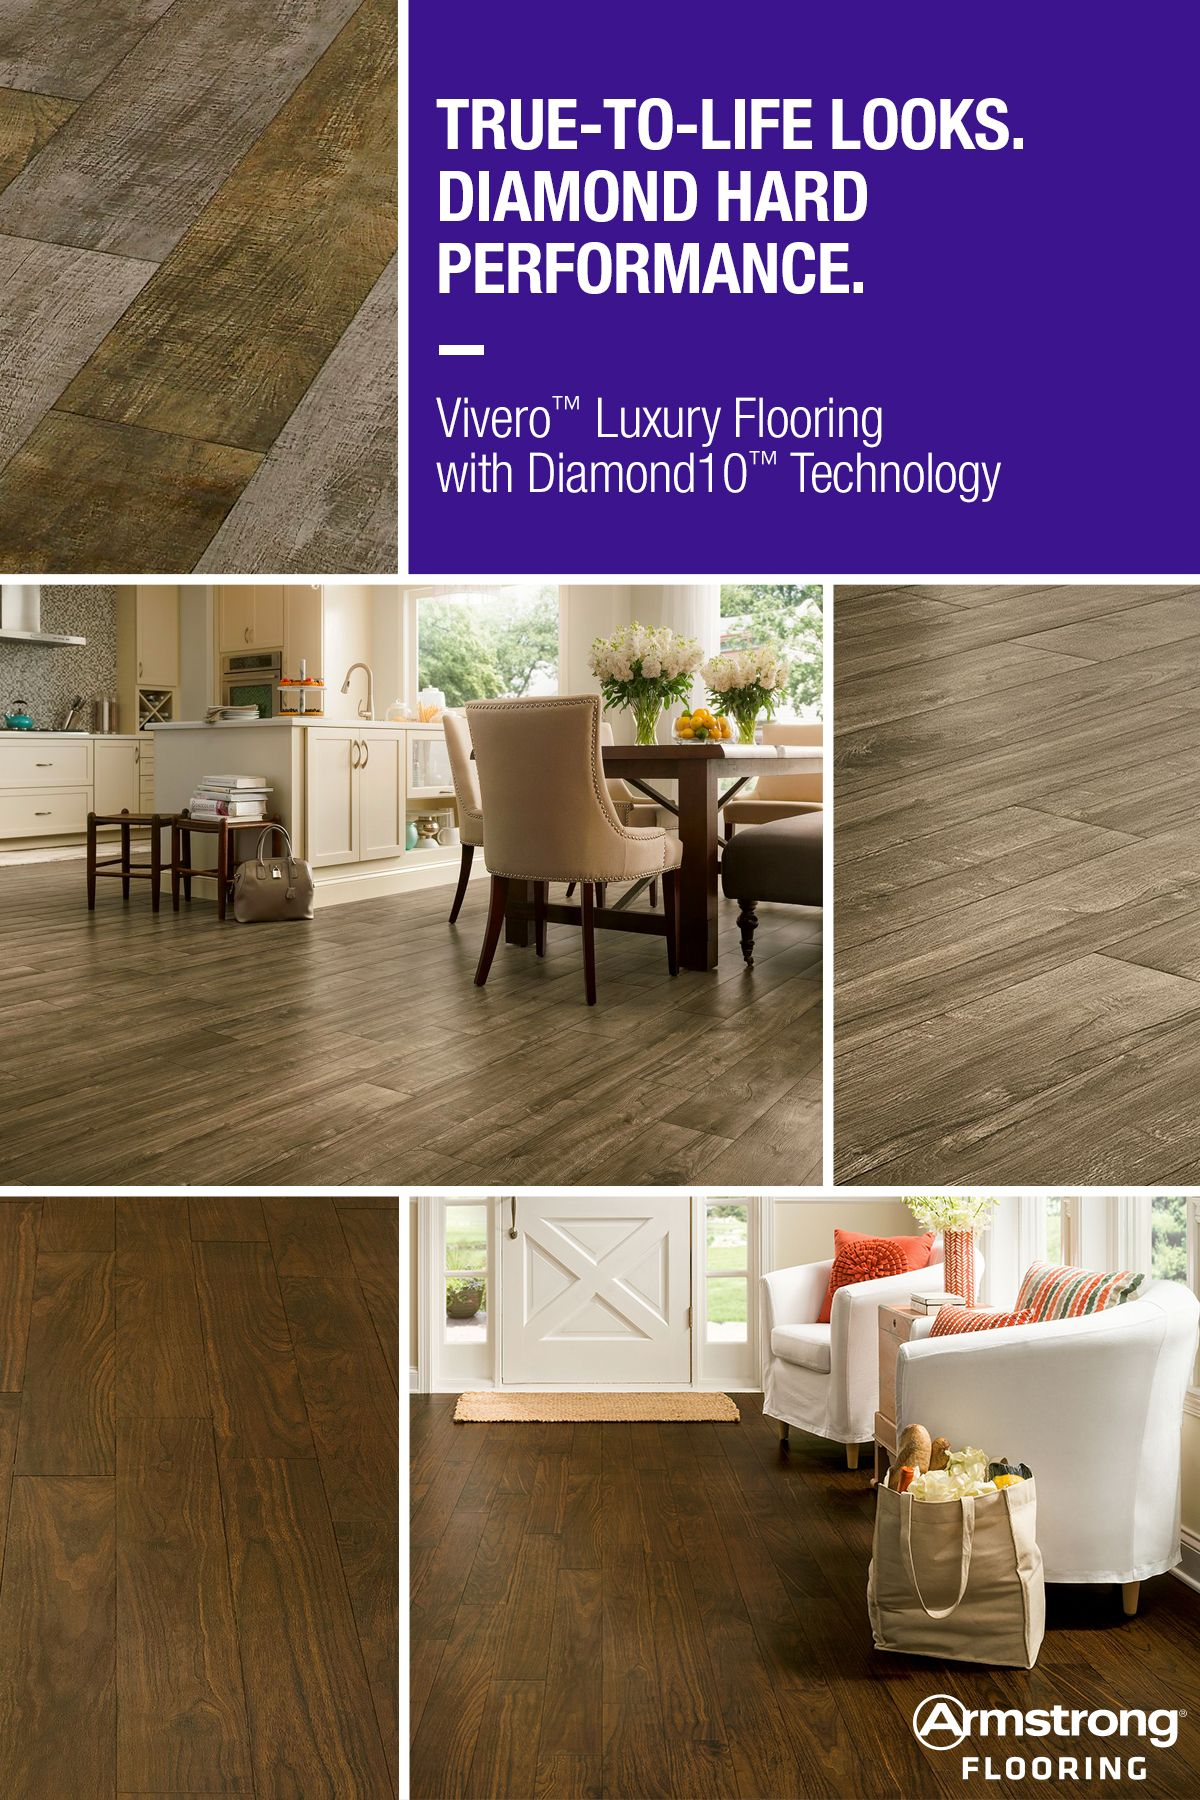 New Vivero Luxury Flooring Offers Beautiful Looks Combined With Exclusive Diamond 10 Technology For Enhanced Durability Realistic Visuals Rustic